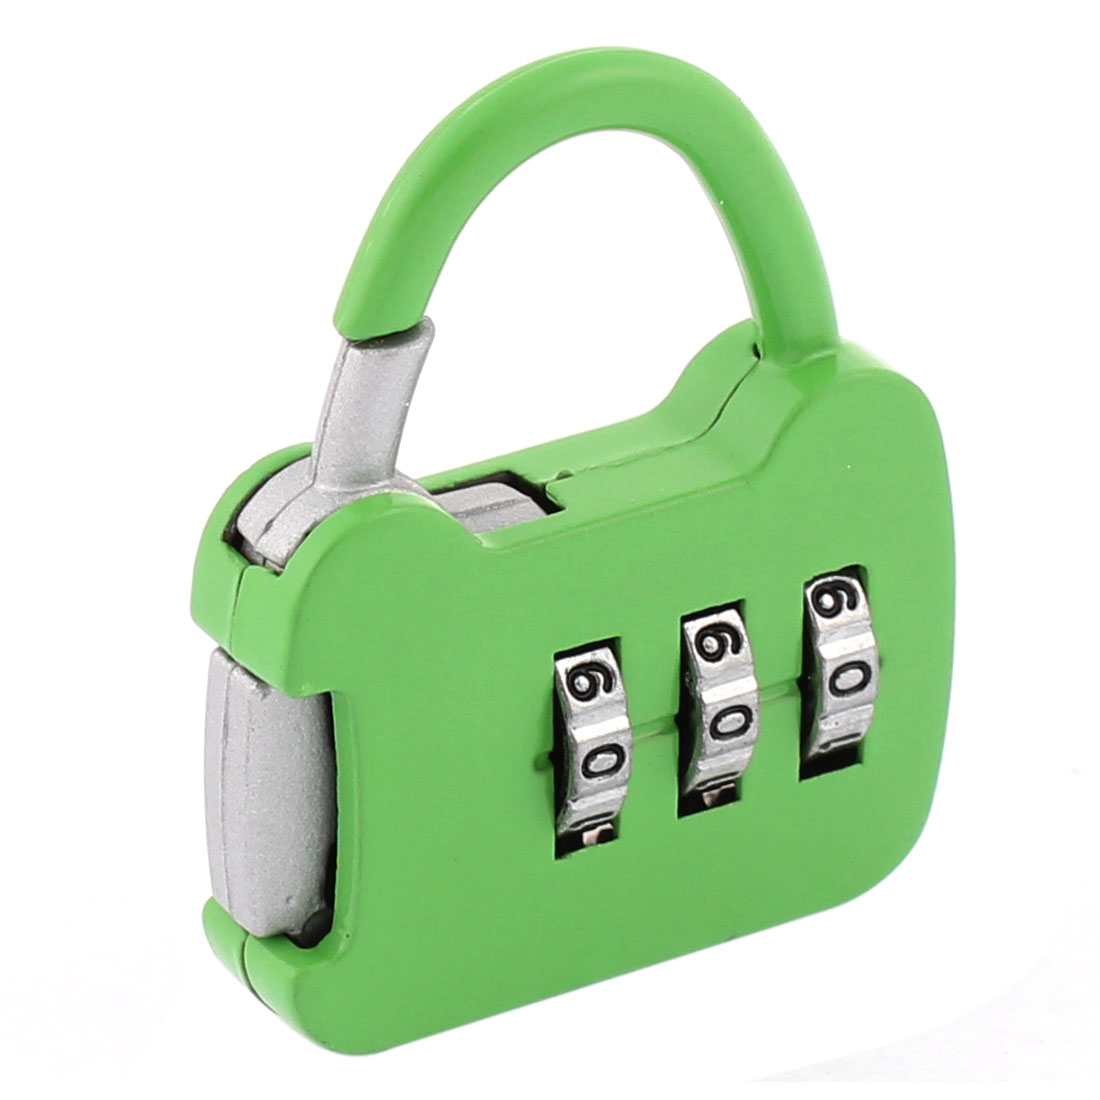 19mm x 16mm 3 Digits Metal Password Padlock Green for Tool Box Golf Case